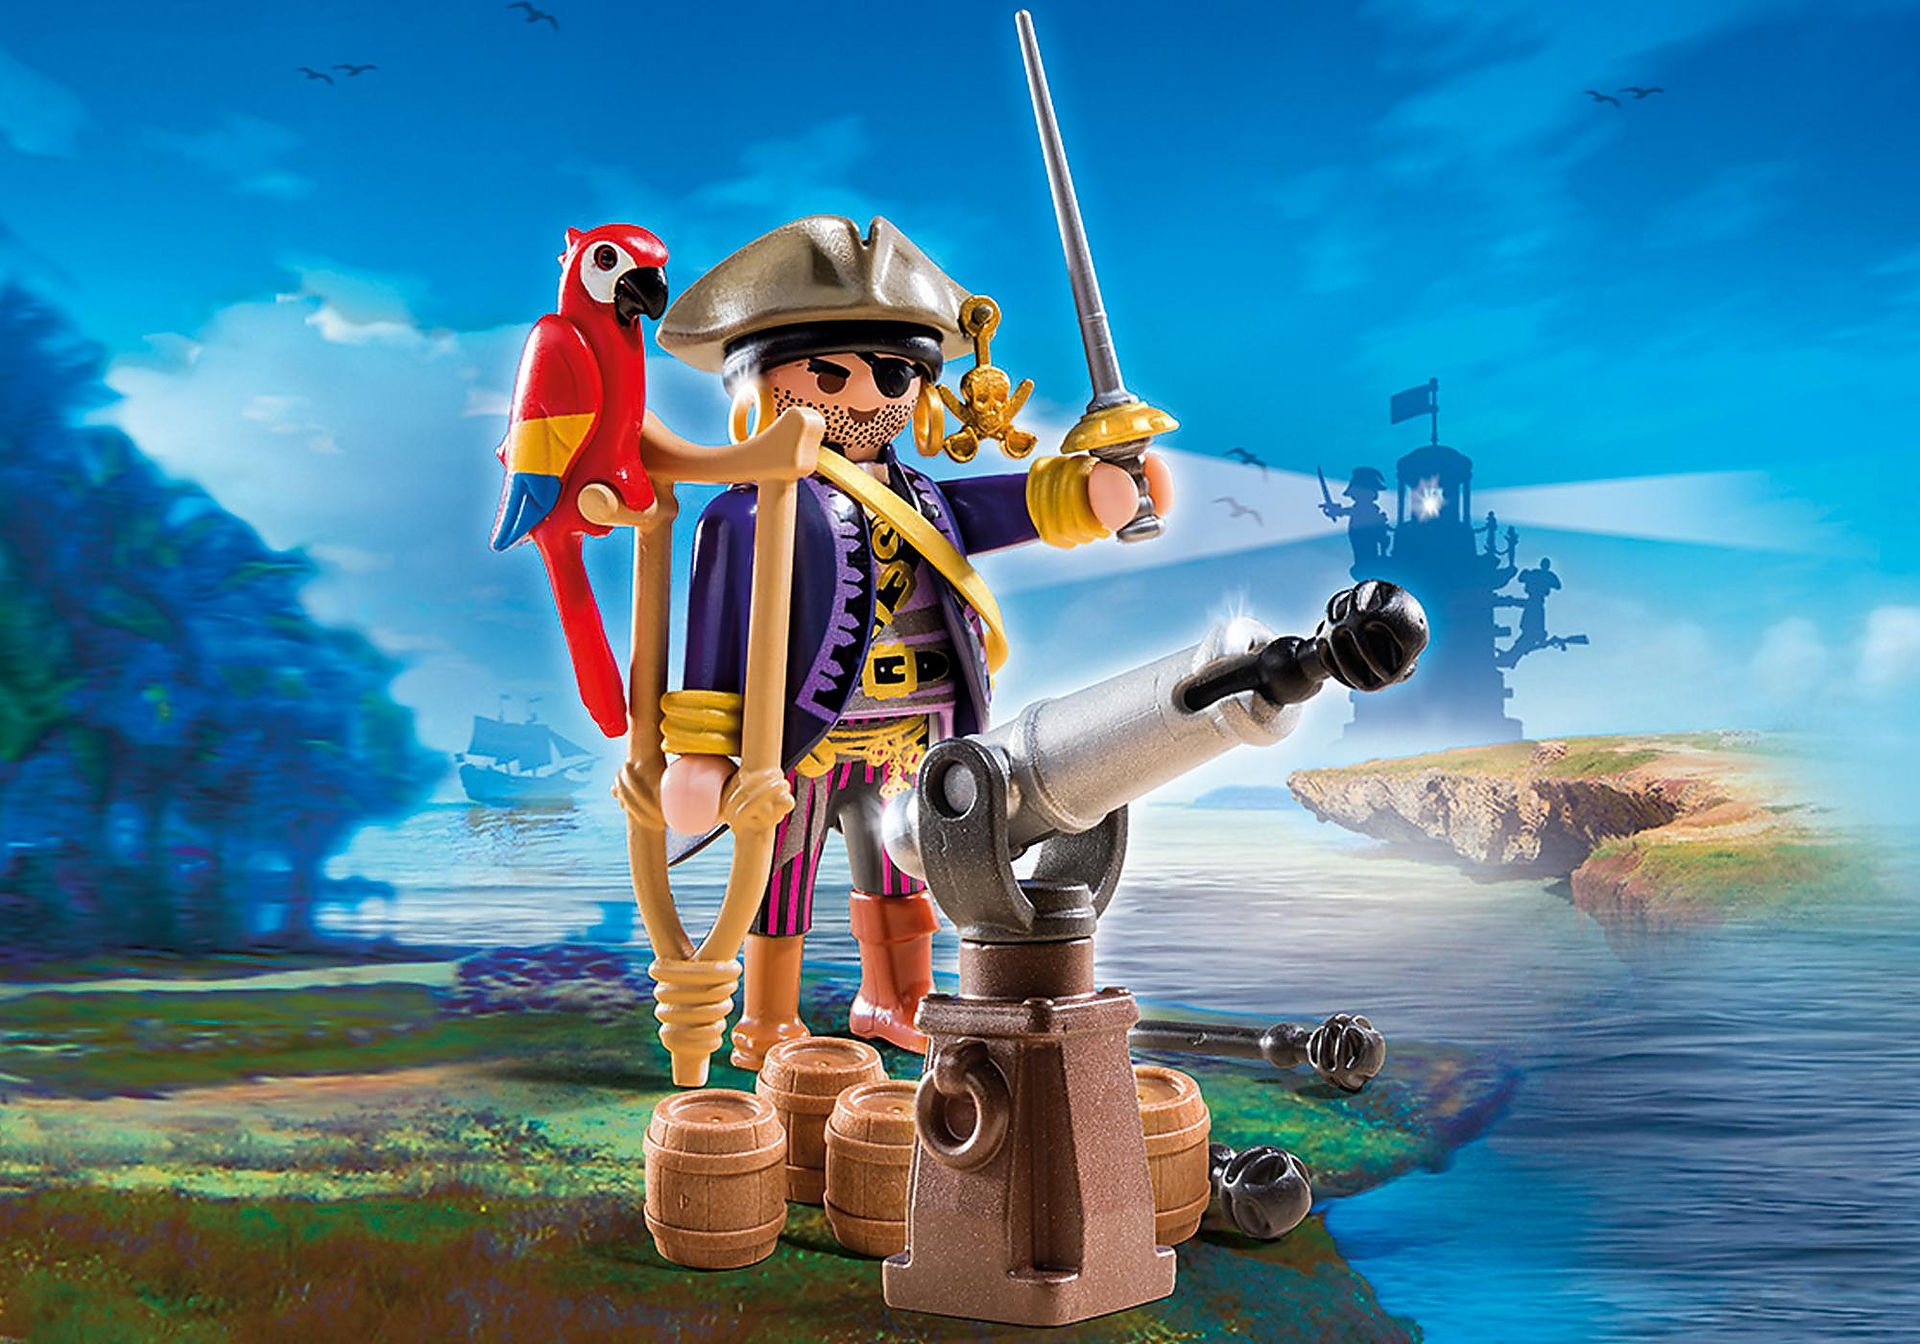 http://media.playmobil.com/i/playmobil/6684_product_detail/Piratenkapitän